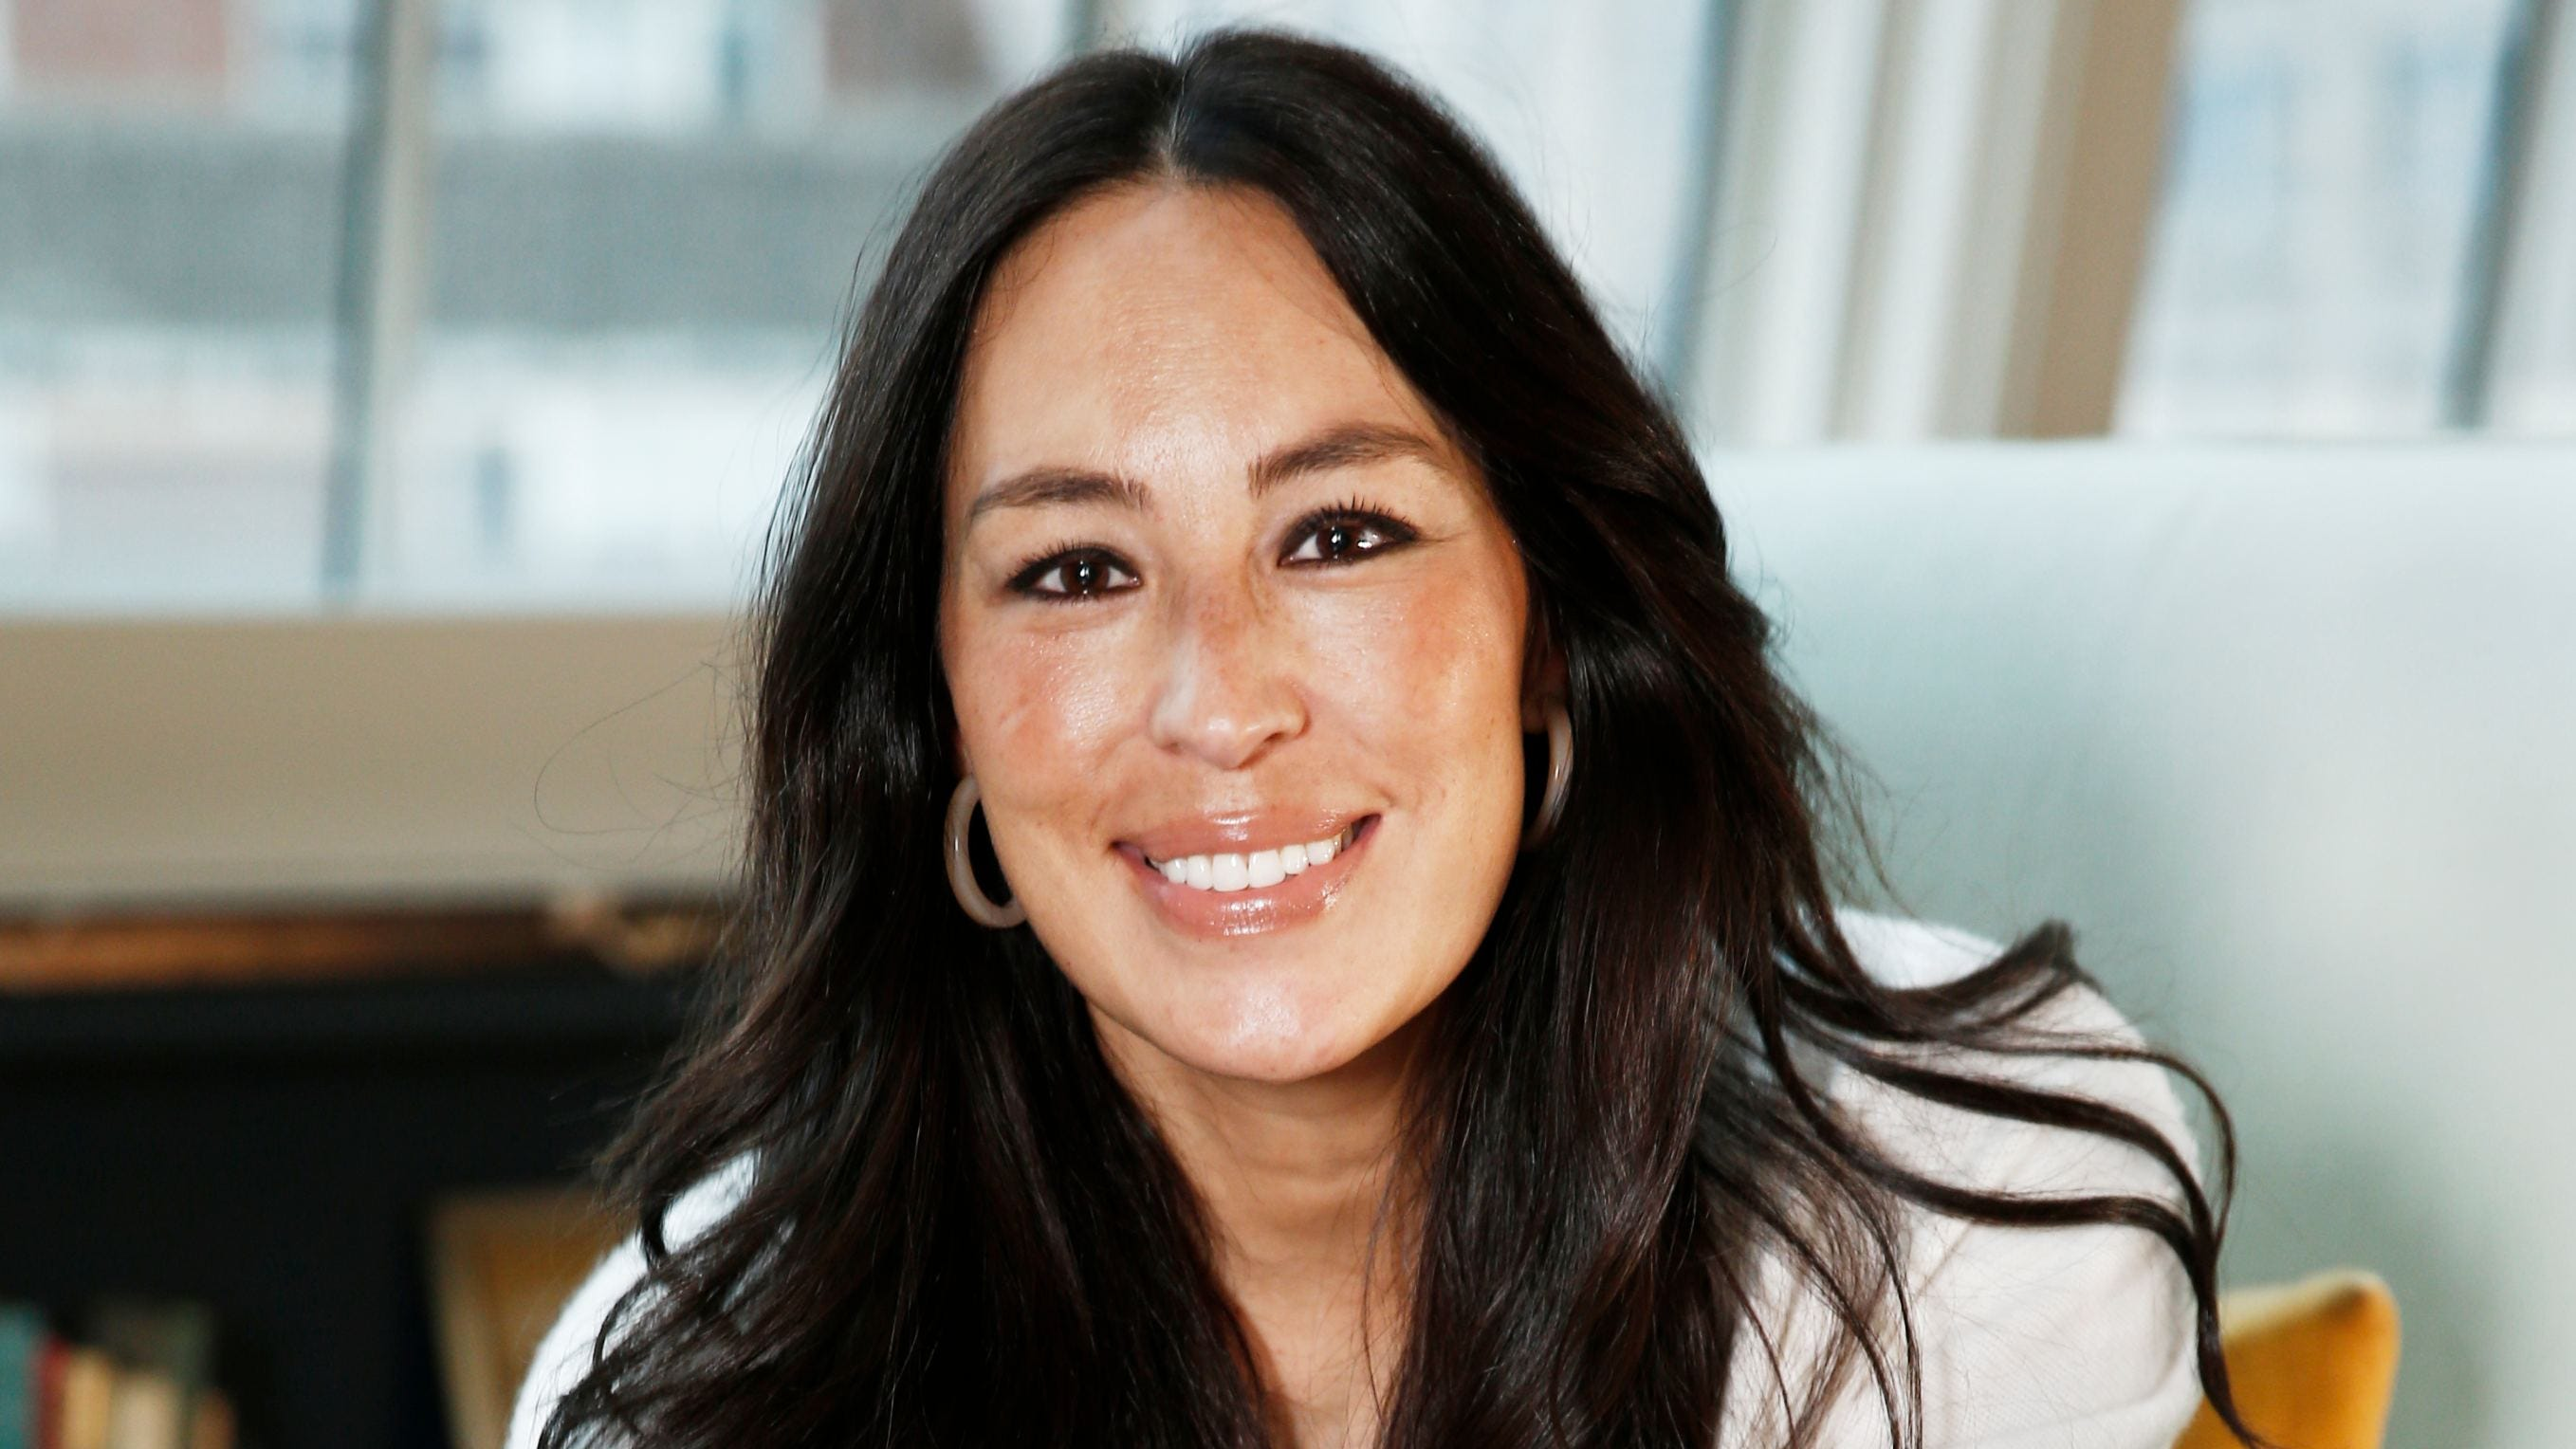 Joanna Gaines wants moms to 'Know that you are doing enough. Own yourself'